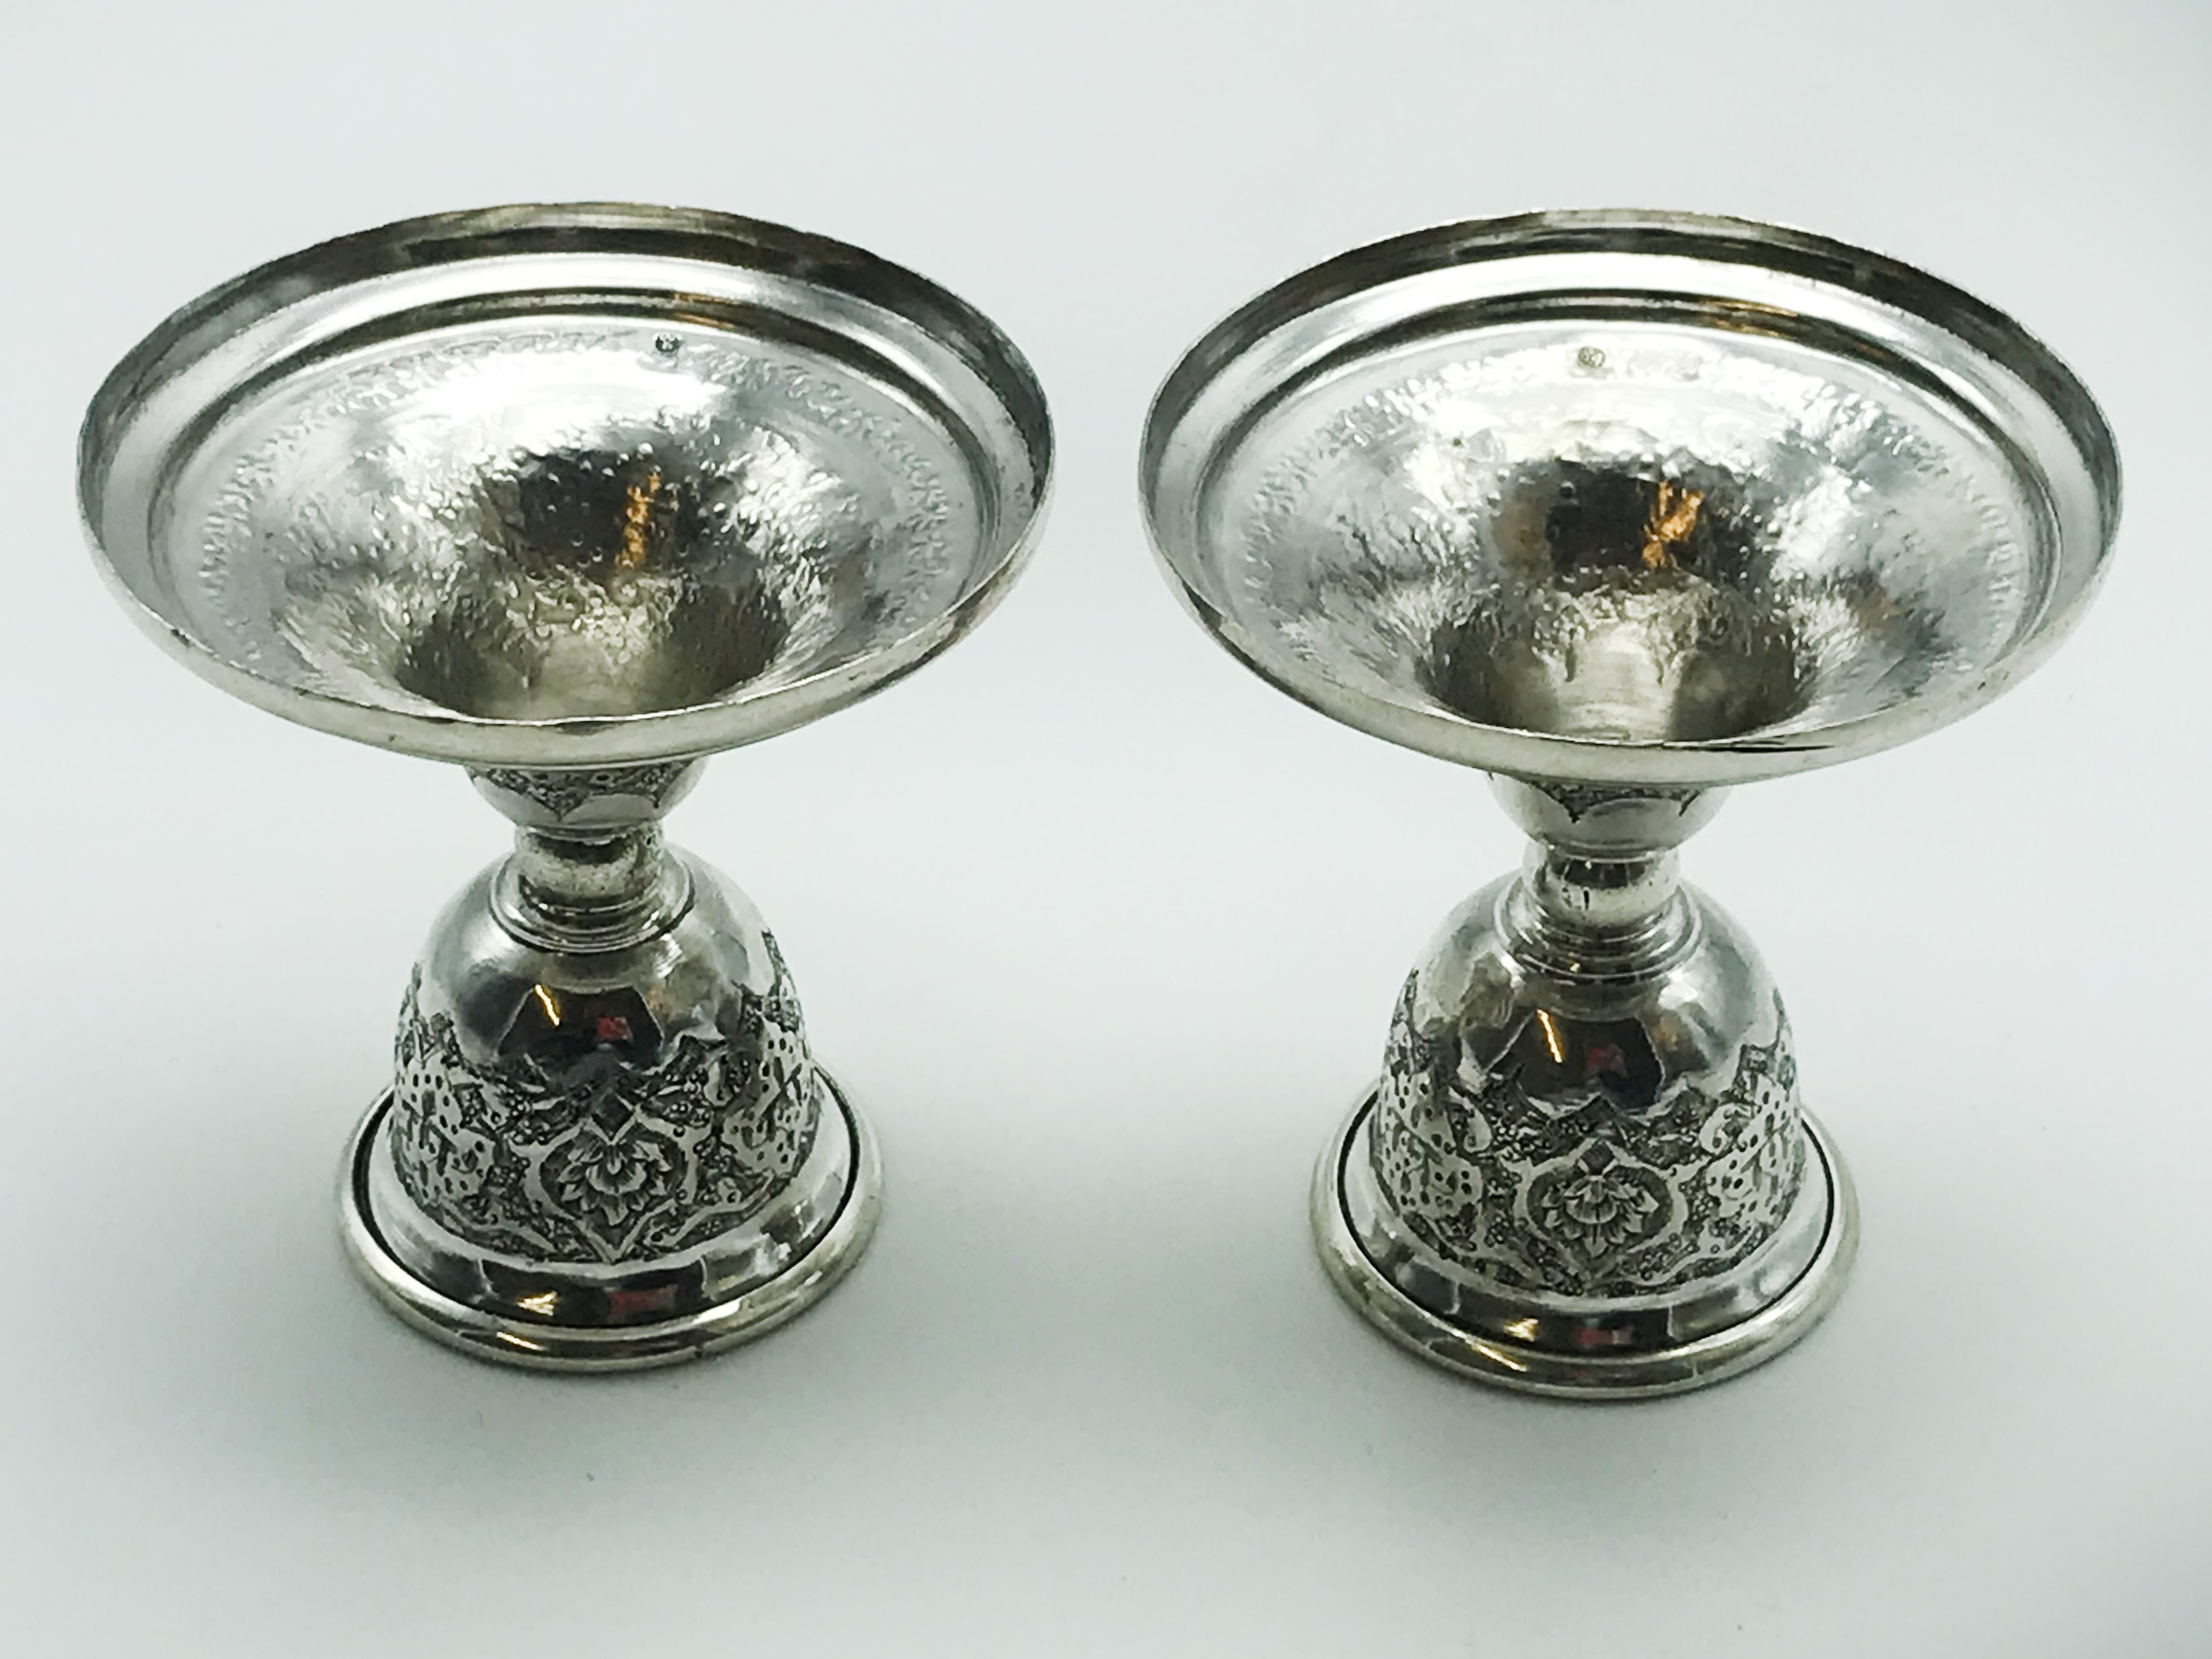 Lot 10 - PAIR OF SMALL RUSSIAN OR MIDDLE EASTERN SILVER CANDLESTICKS HALLMARKED 84